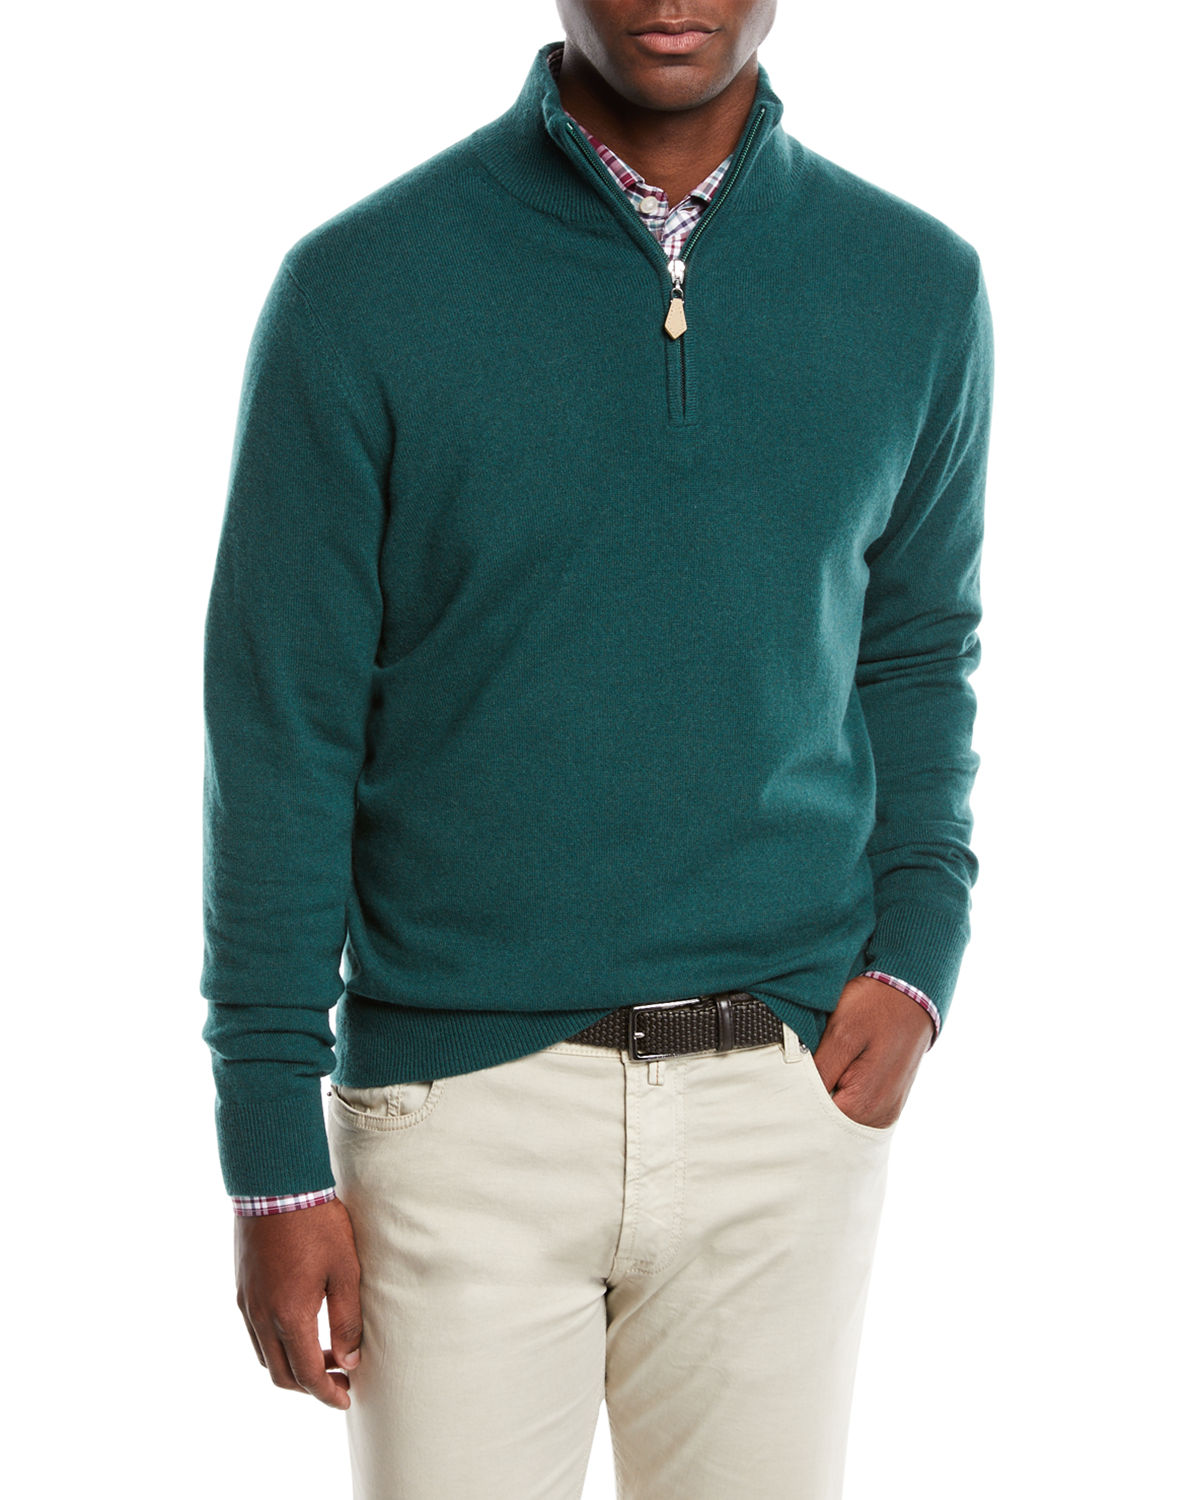 Men's Cashmere Quarter-Zip Sweater